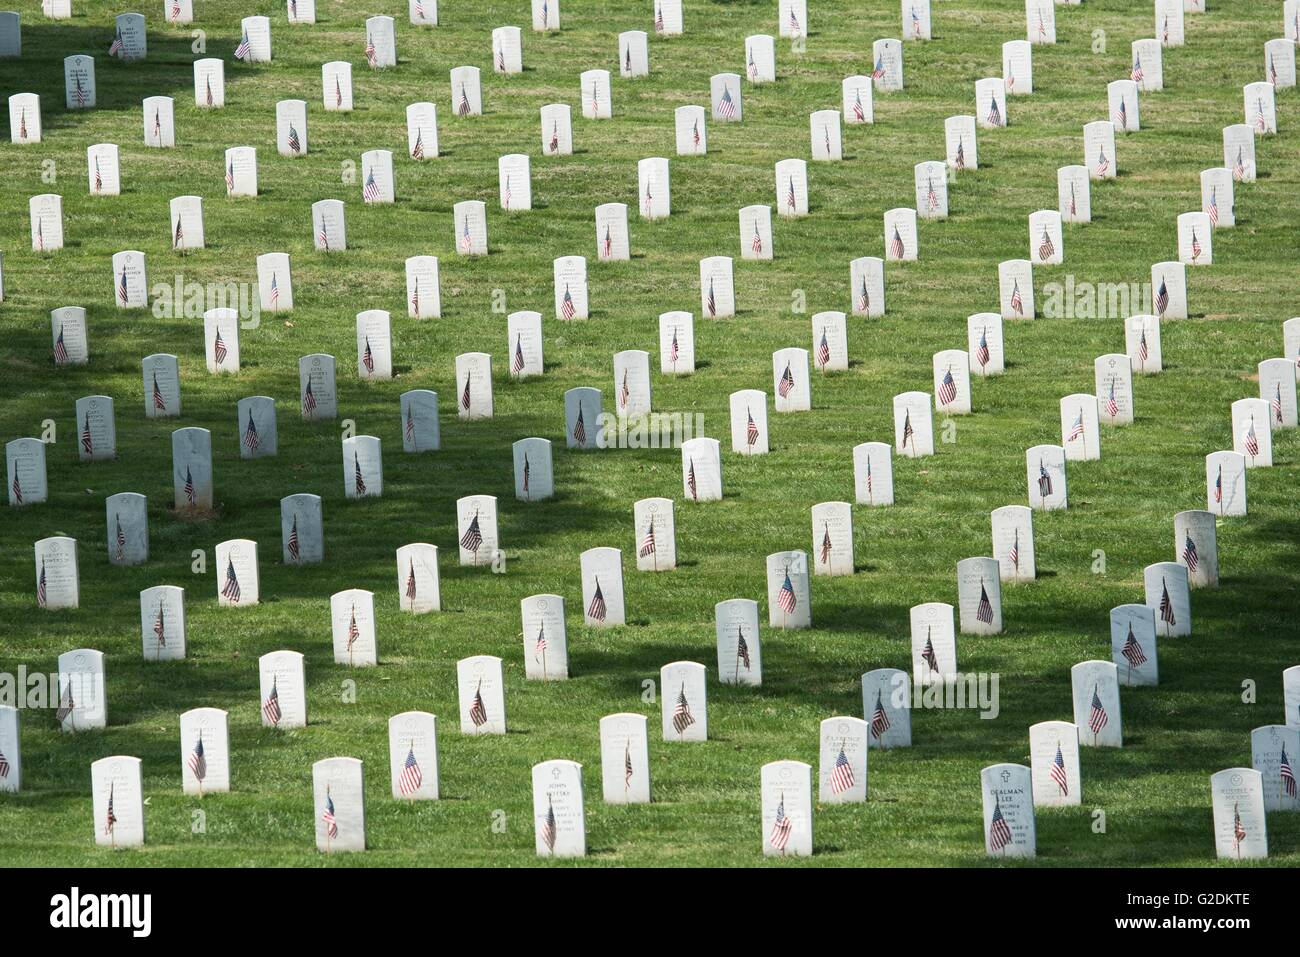 Thousands of American flags mark graves of soldiers who died in battle at Arlington National Cemetery in honor of - Stock Image